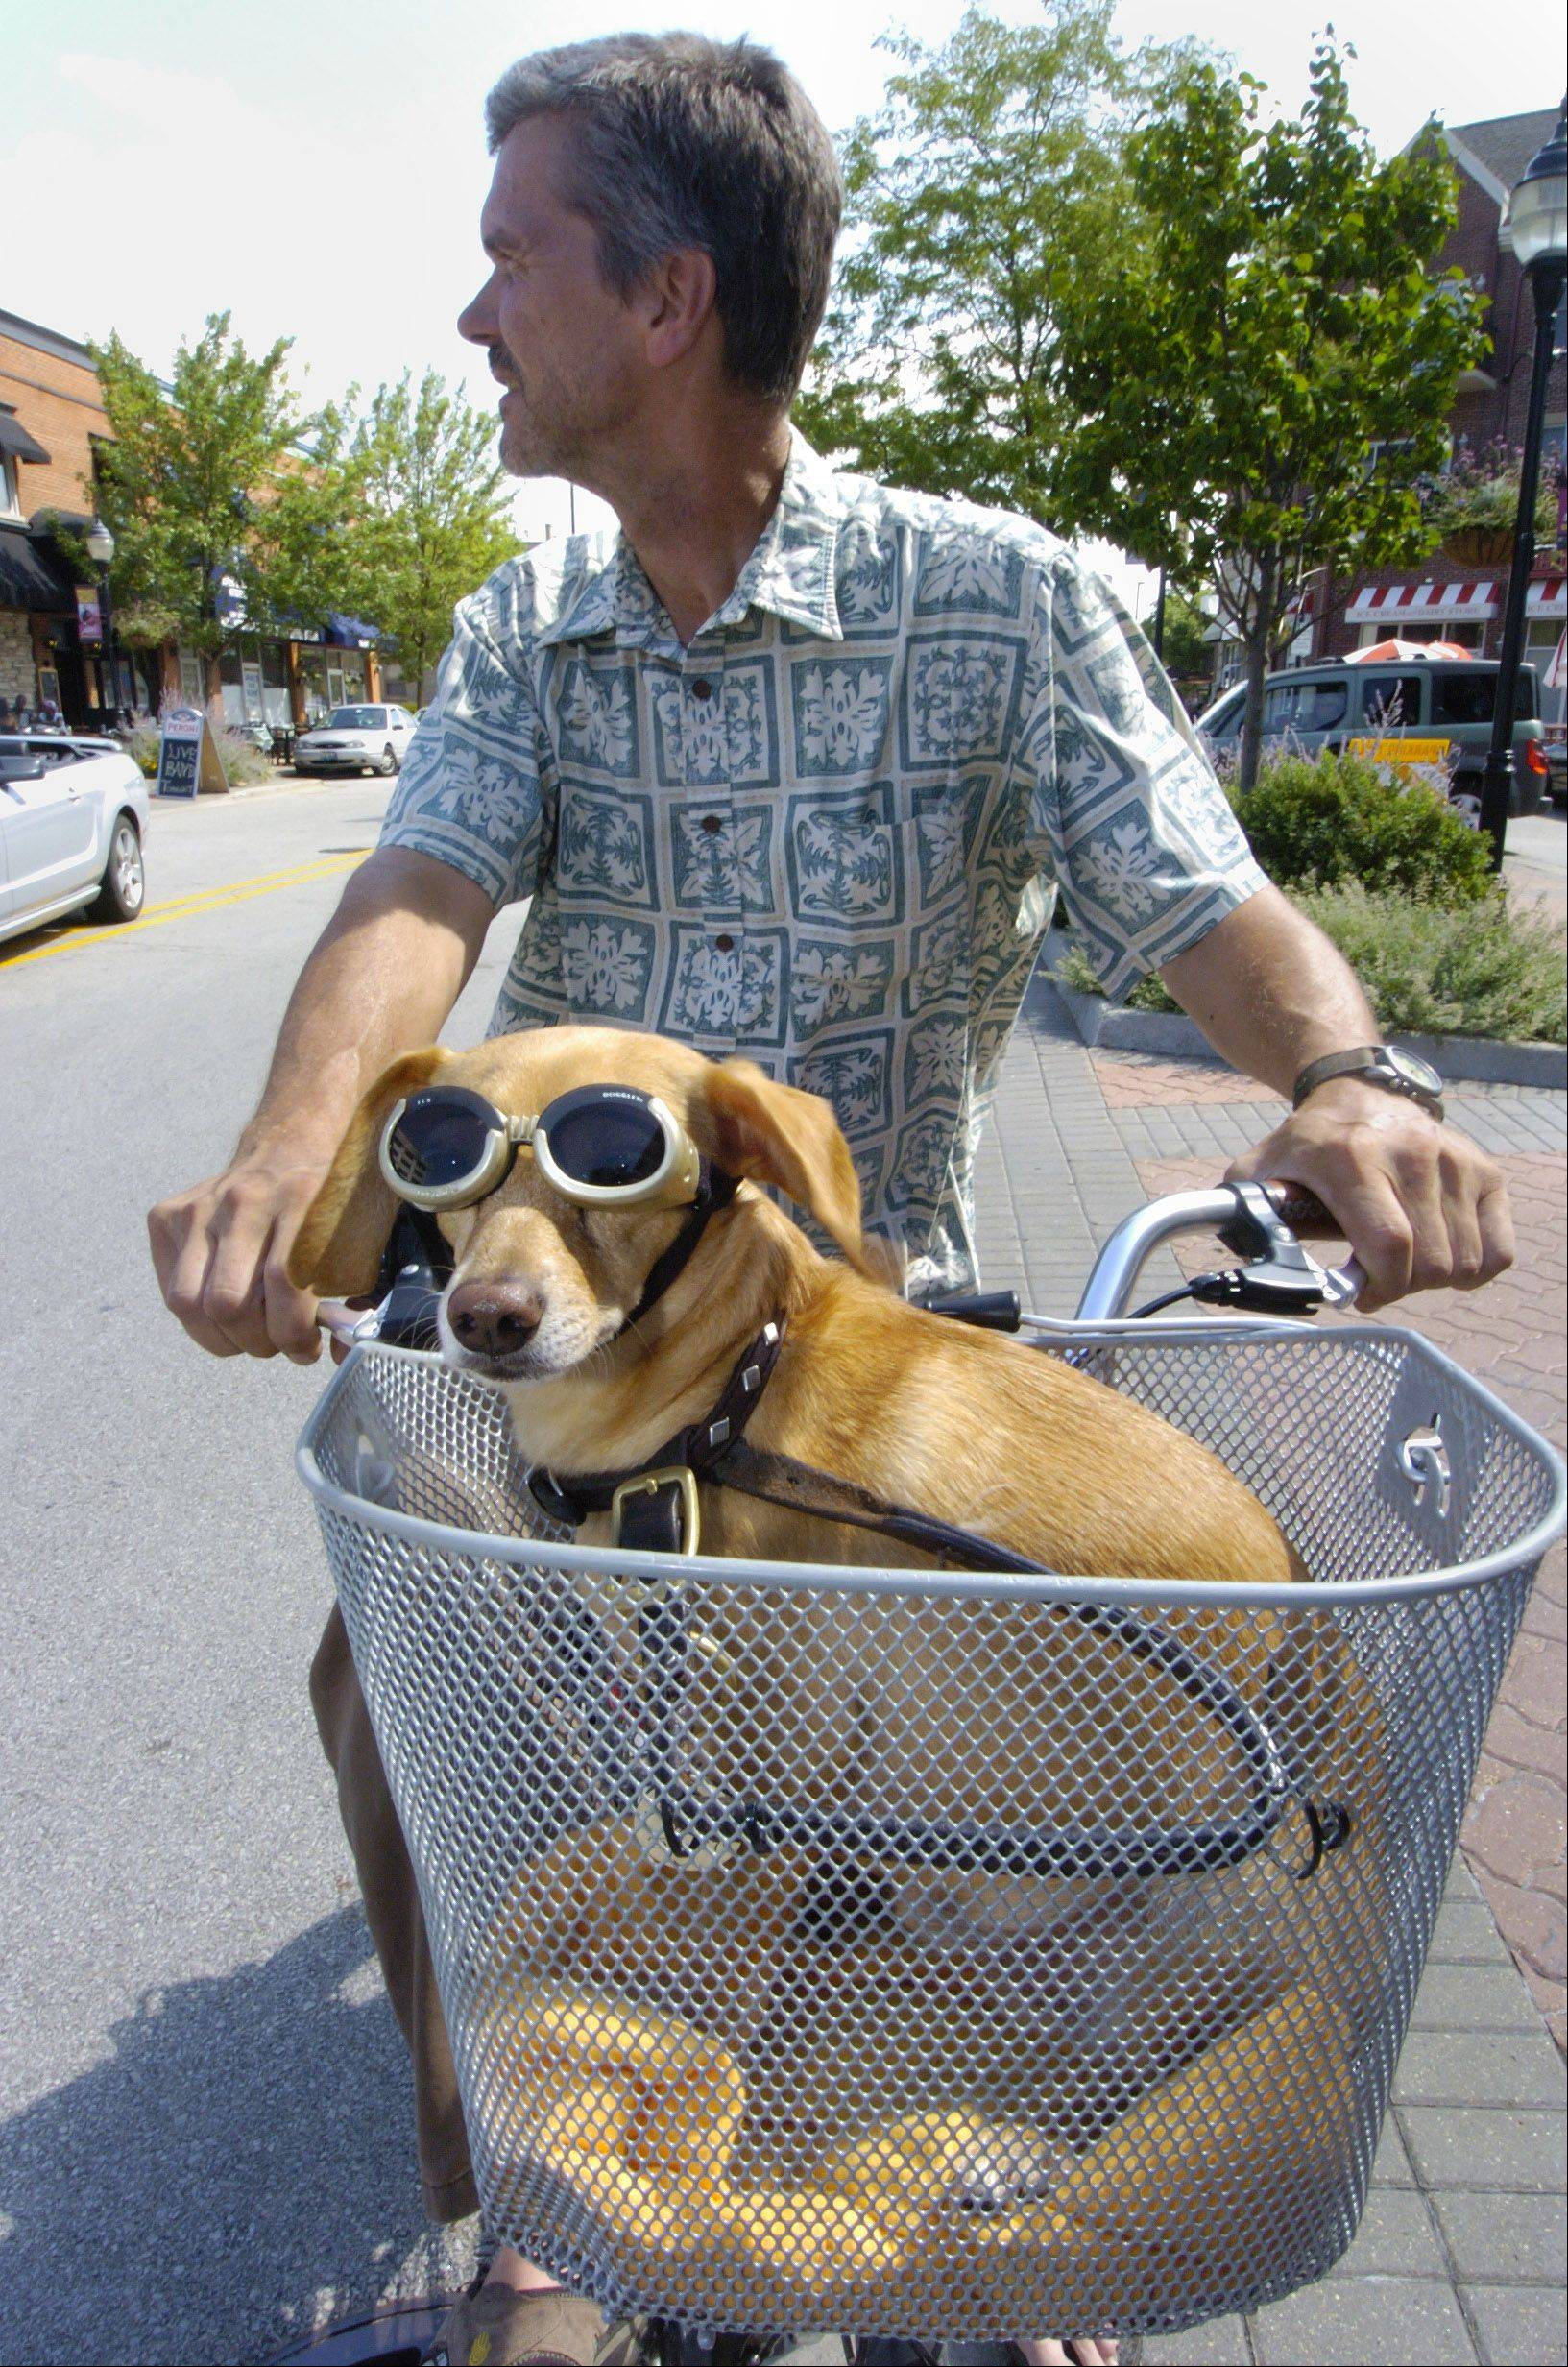 """Jack Lemmon"" sports a set of goggles as he rides securely in the front basket of Peter Brusen's bicycle in downtown Mount Prospect. Brusen, who resides in the village, says that Jack is a former shelter dog who is most likely a chihuahua-dachshund mix."